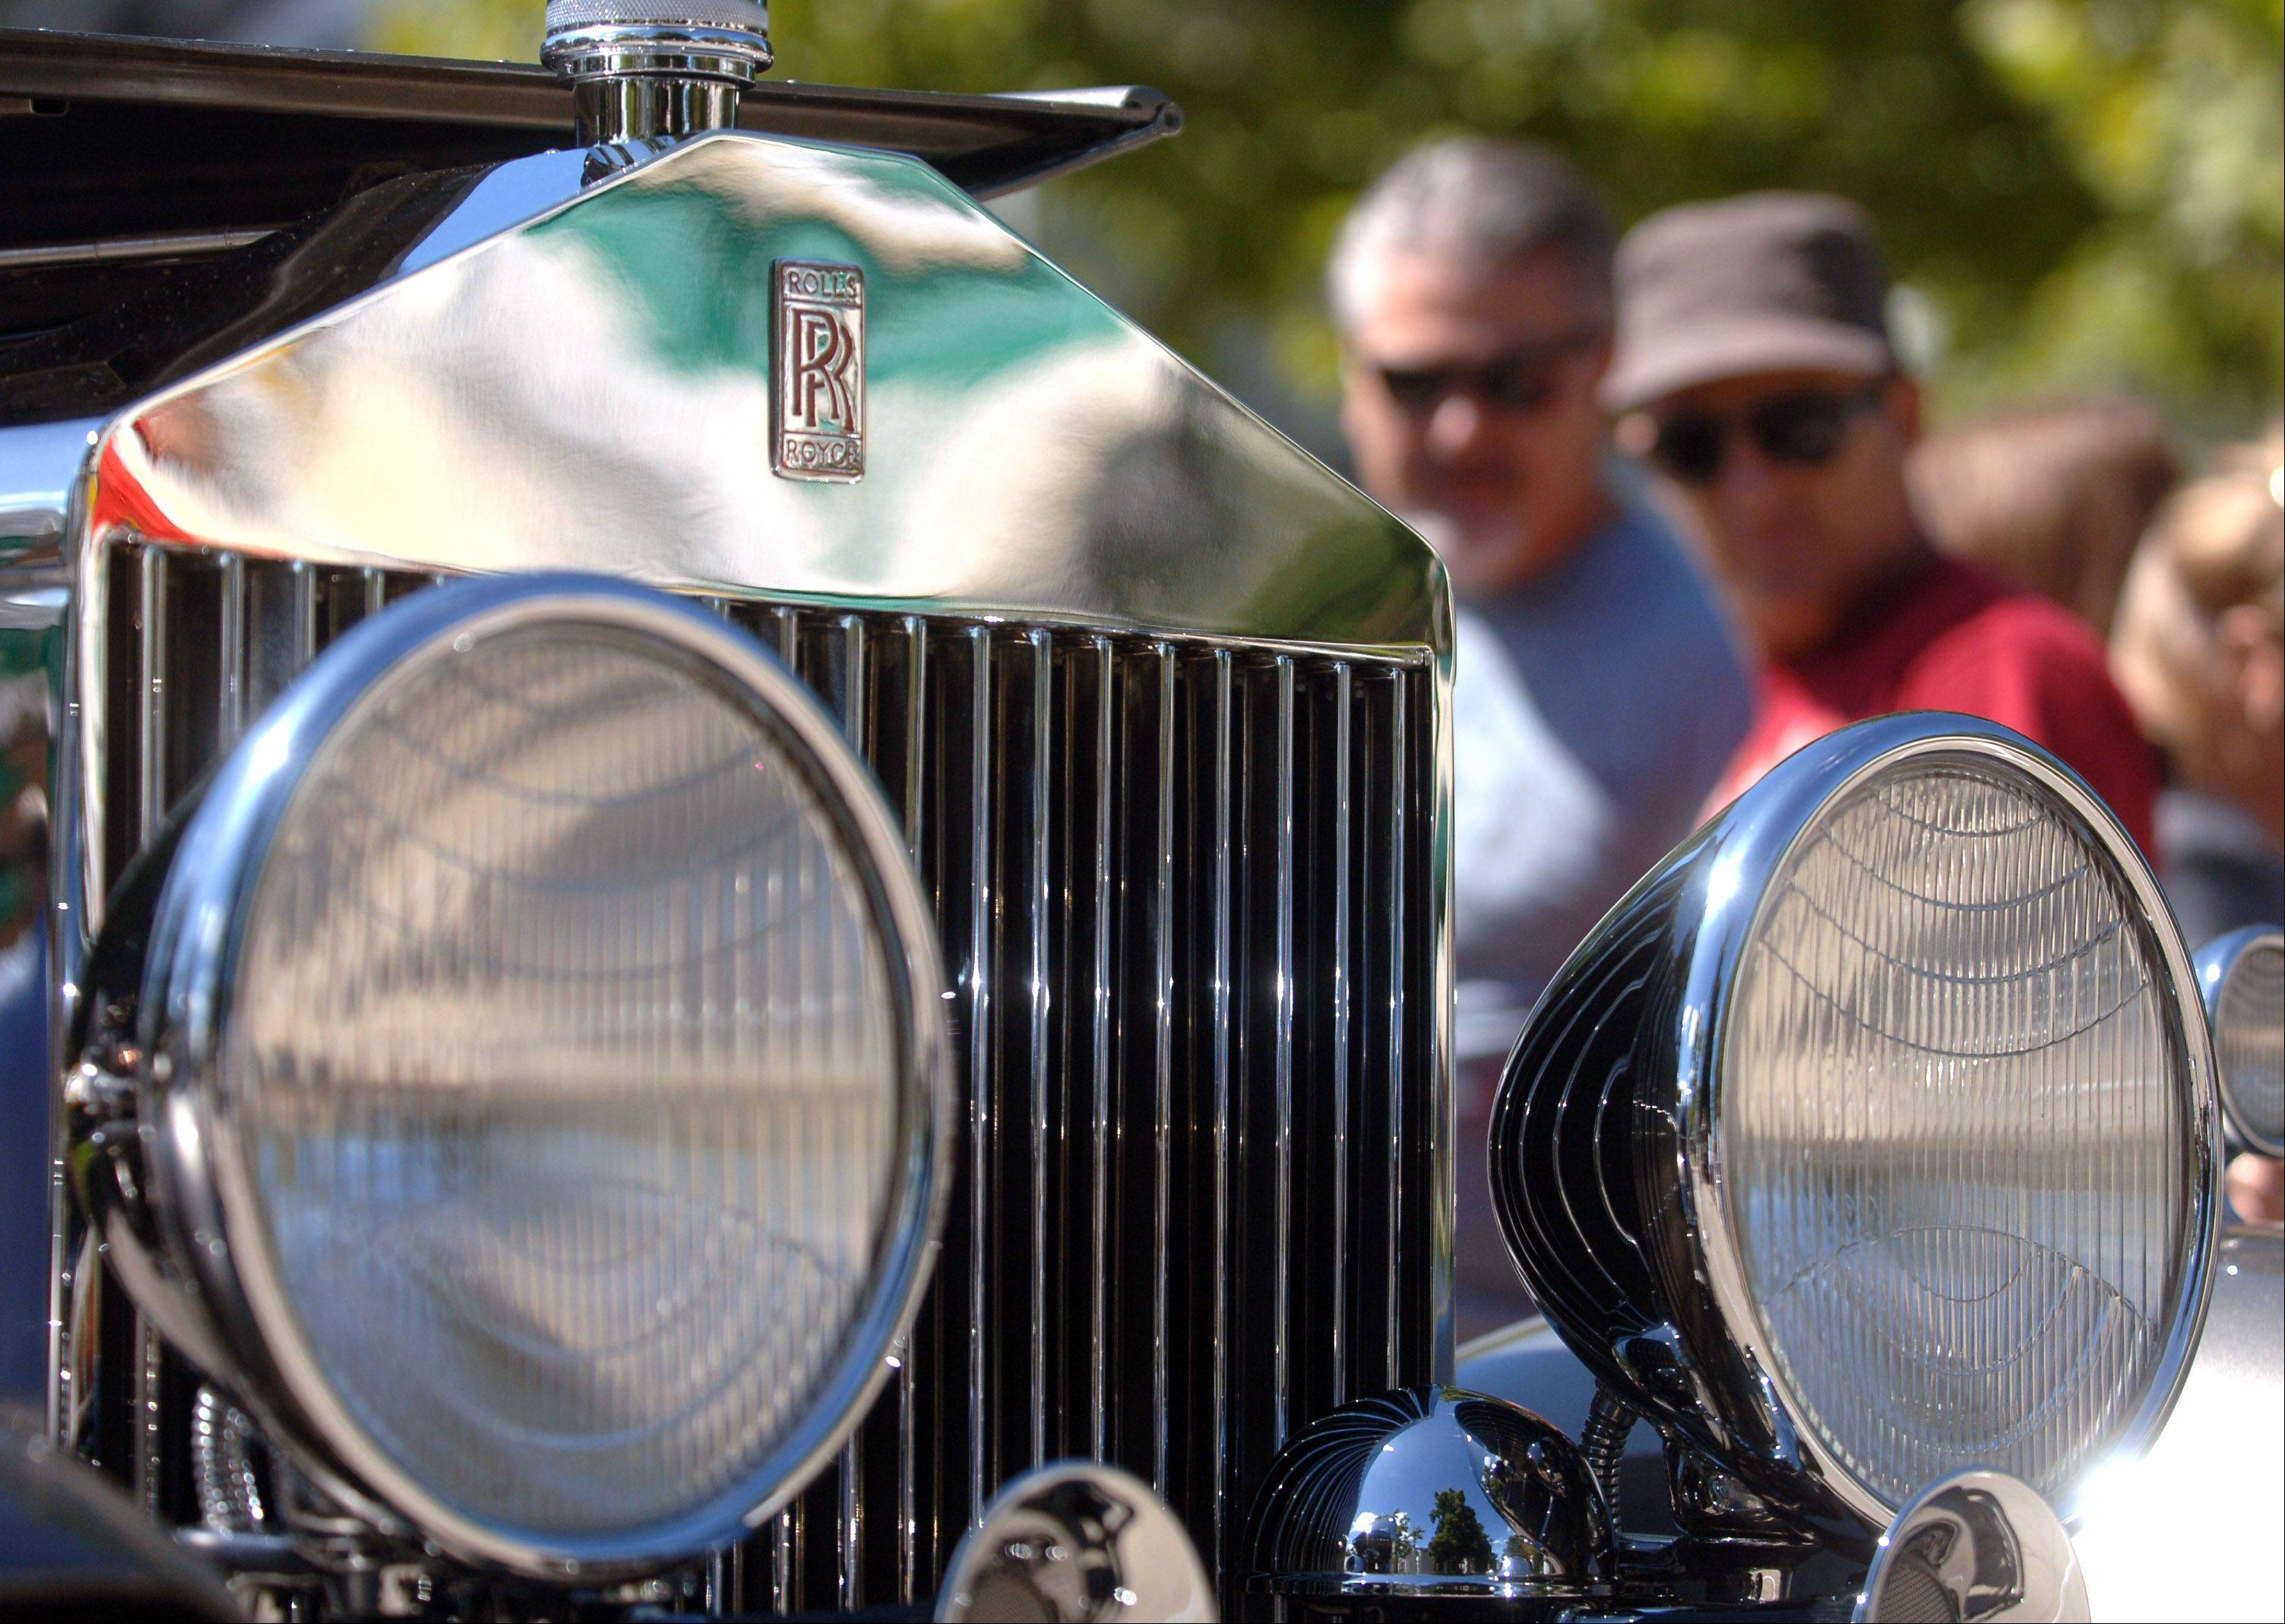 A 1927 Rolls-Royce Phantom I Croydon model catches the eye of passersby during a previous Geneva Concours d'Elegance classic car show.